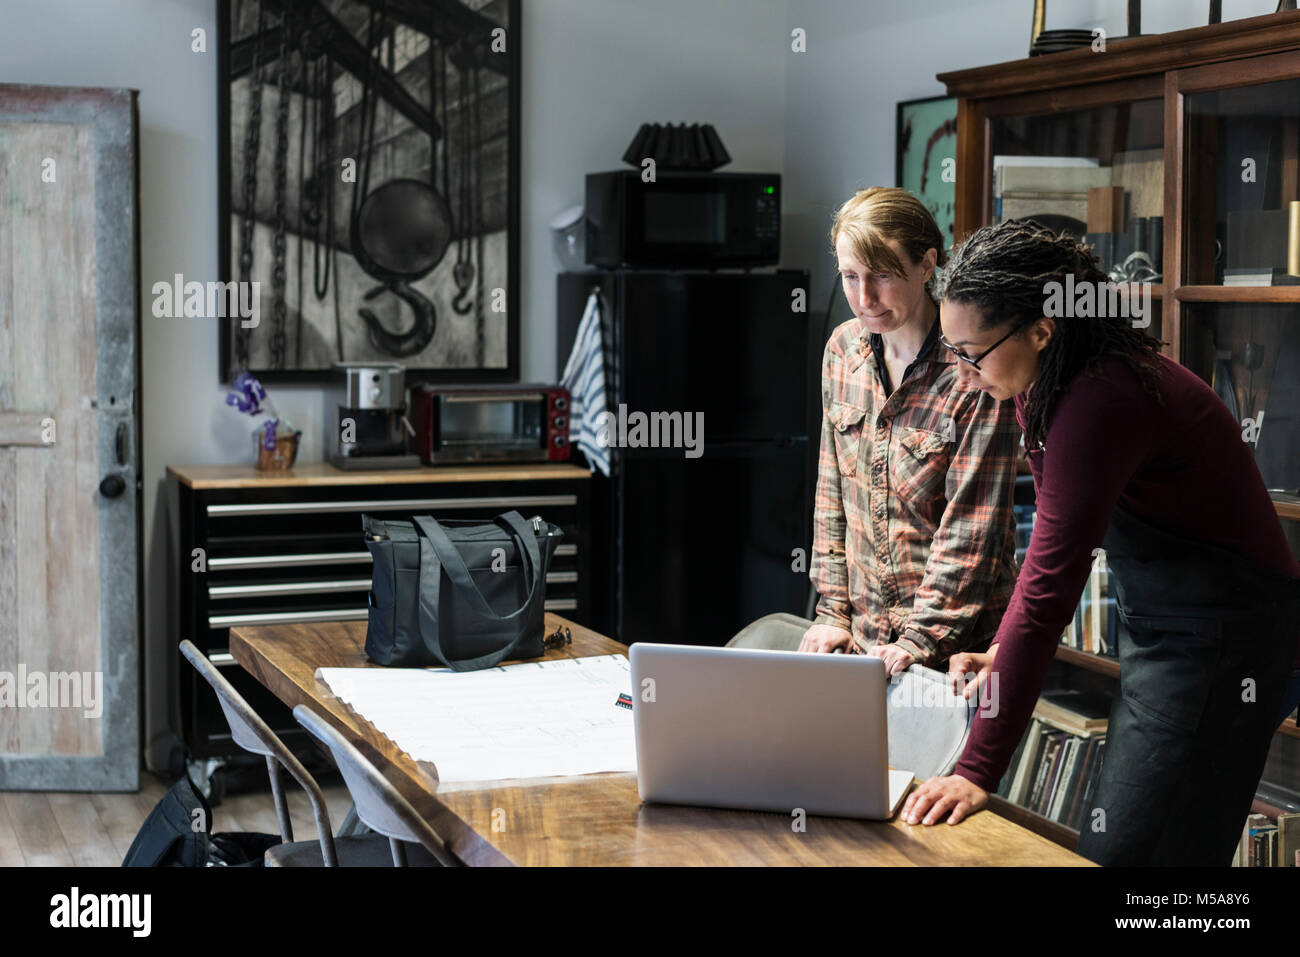 Two women gathered around table in office area of a metal workshop, looking at laptop. - Stock Image